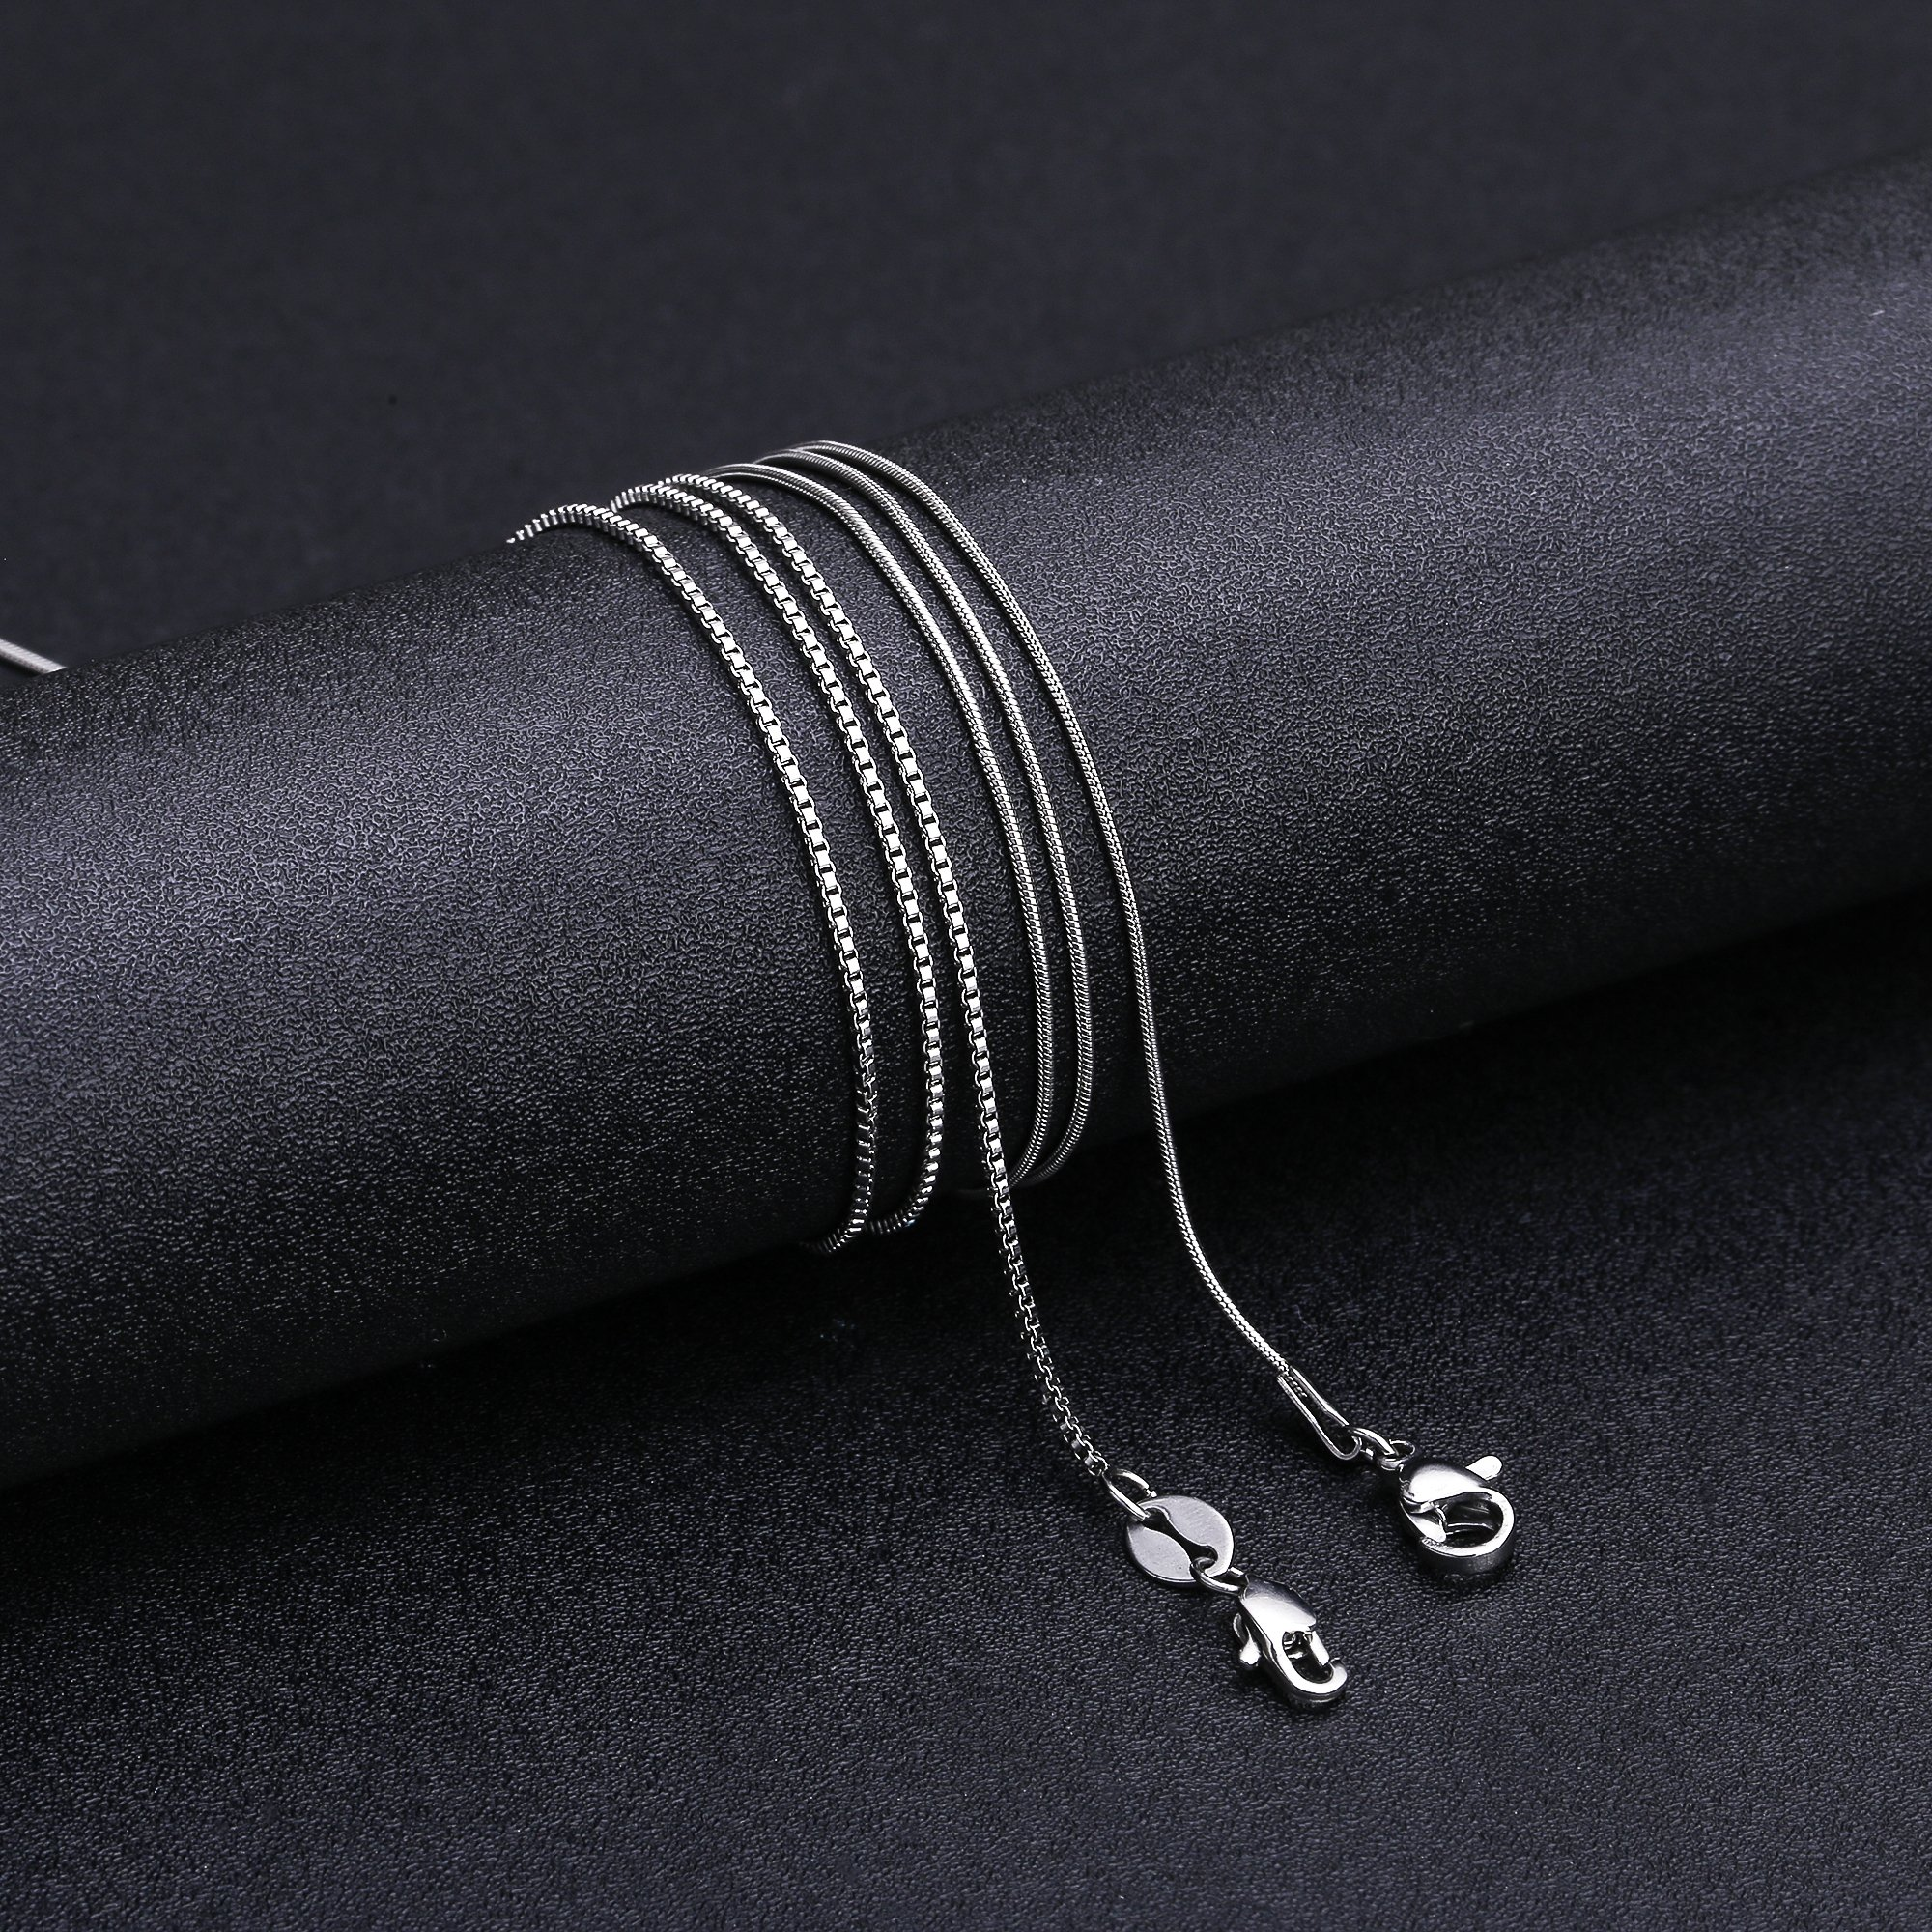 LOLIAS 2 Pcs Stainless Steel 1mm Round Snake Chain Box Chain Necklace Super Thin & Strong,30 Inch by LOLIAS (Image #6)